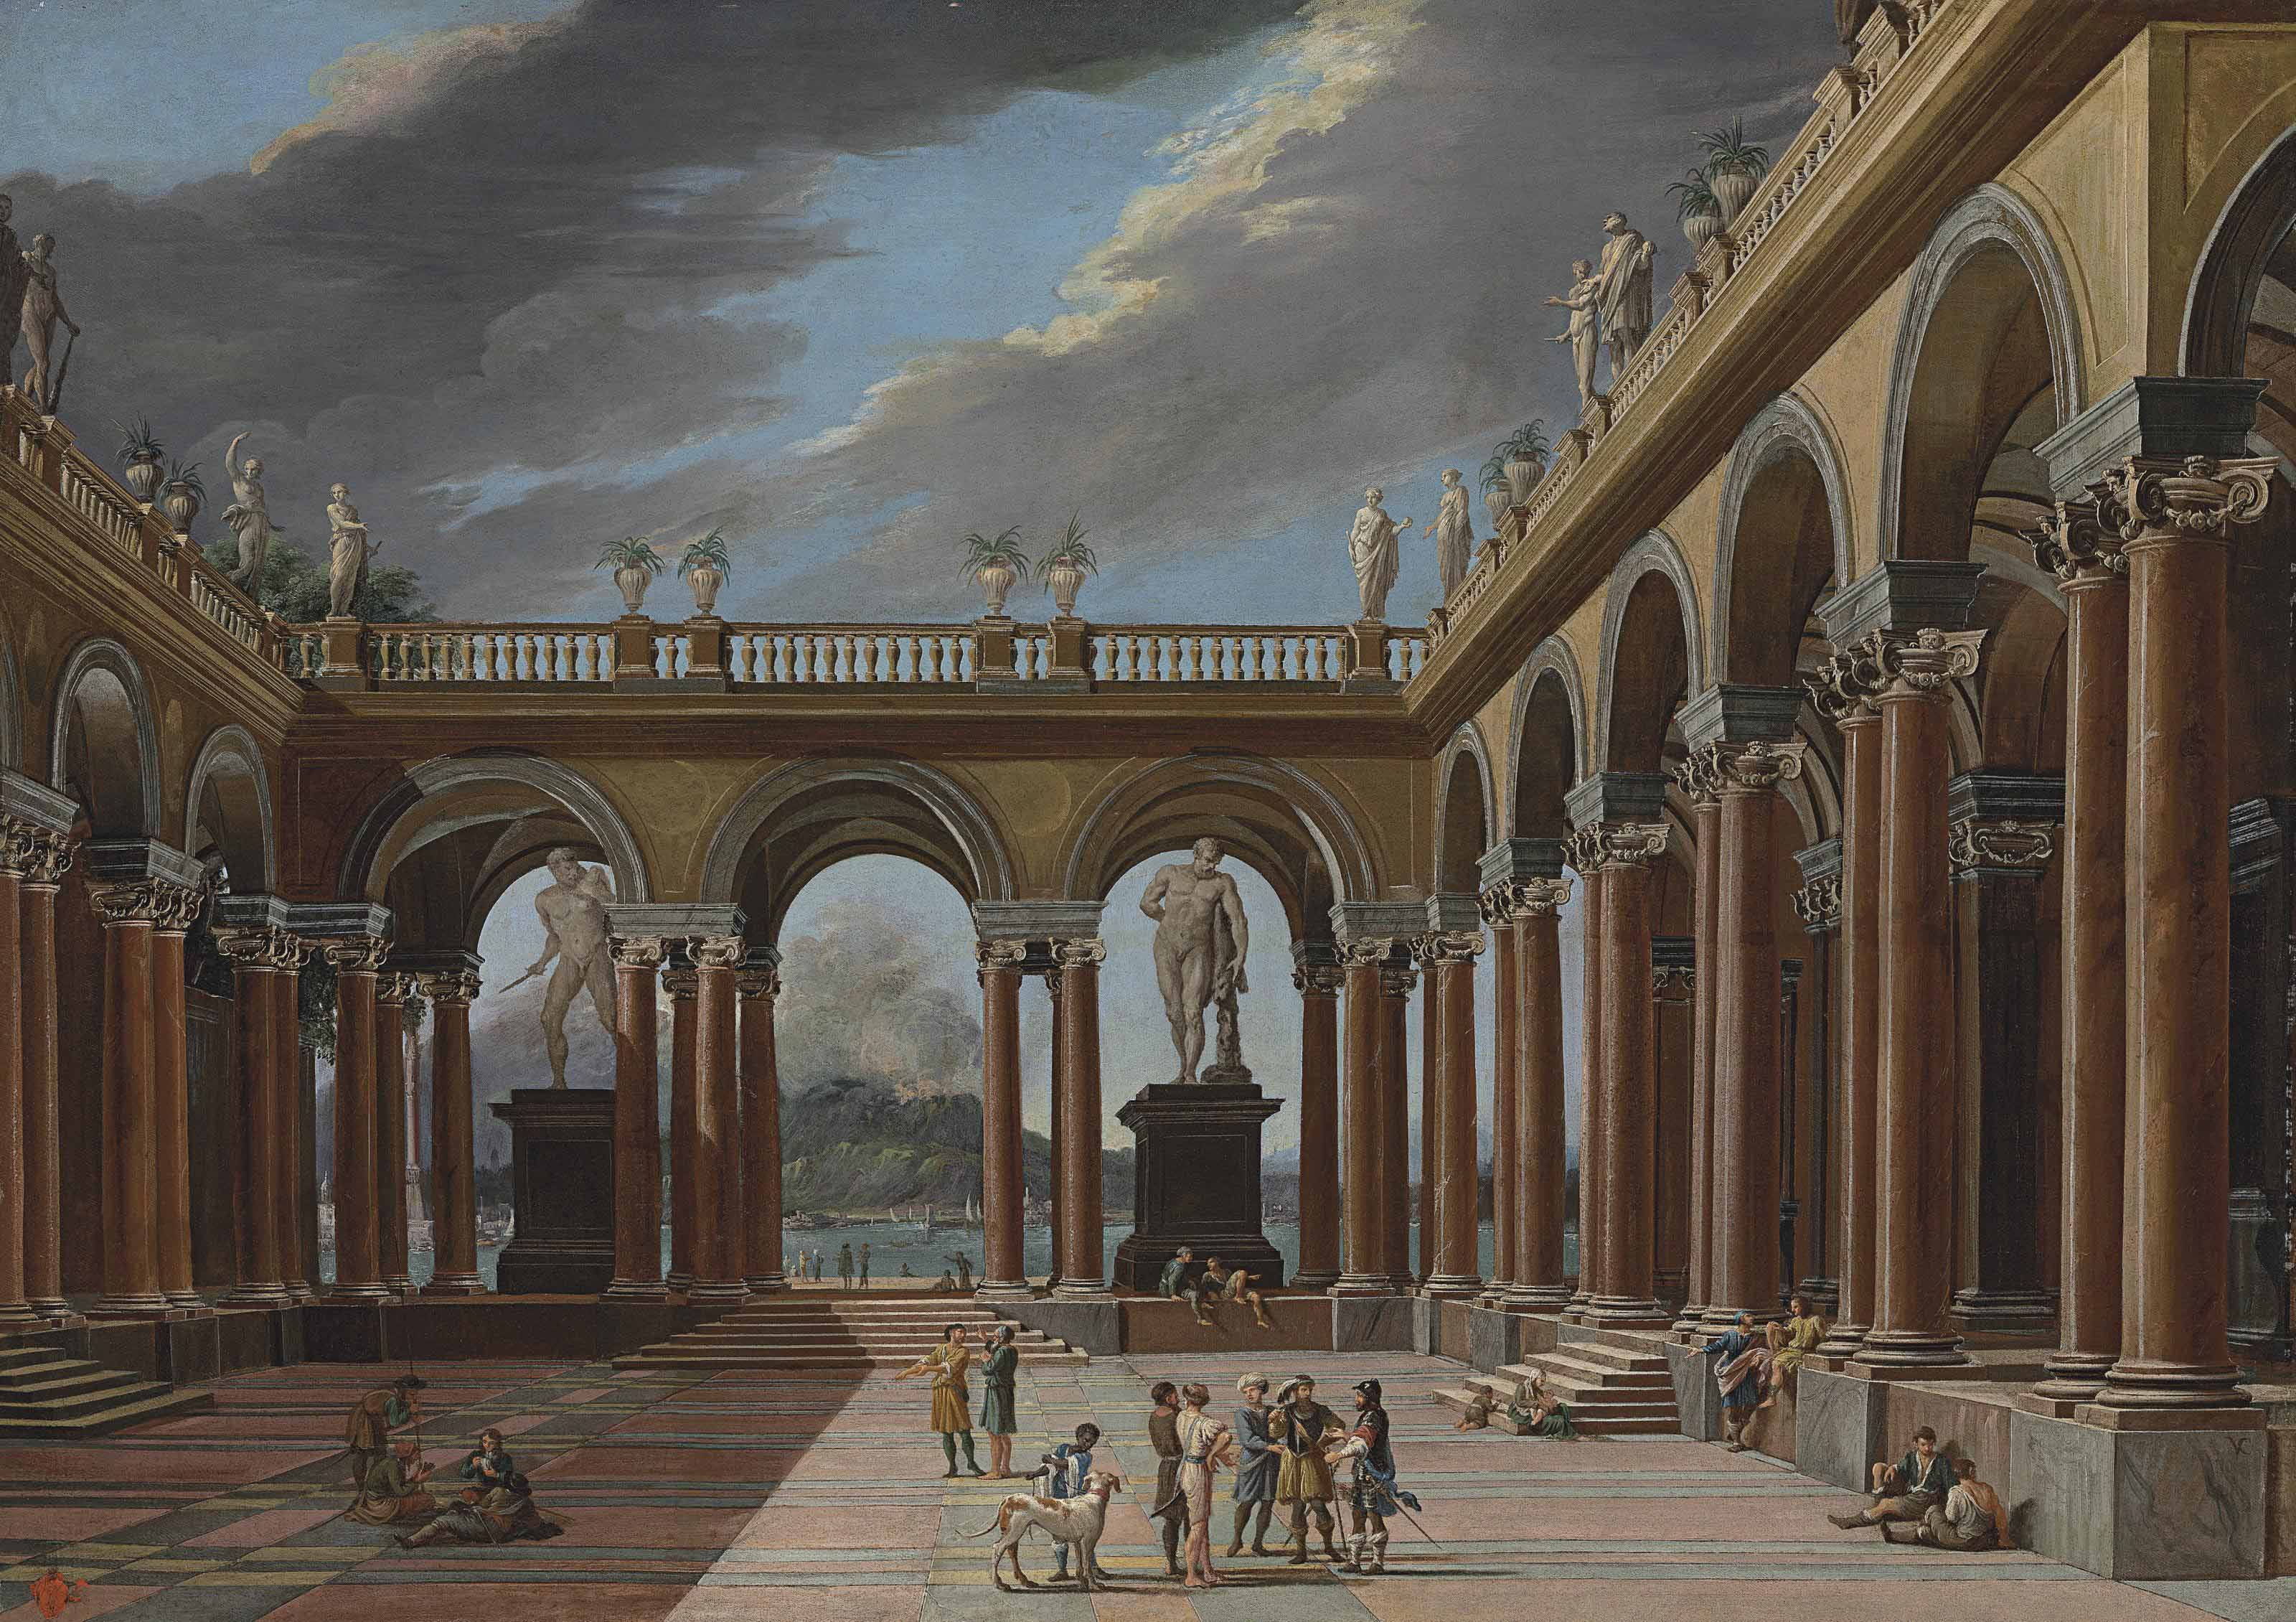 An architectural capriccio of a loggia with elegantly-dressed figures, the sea and mountains beyond